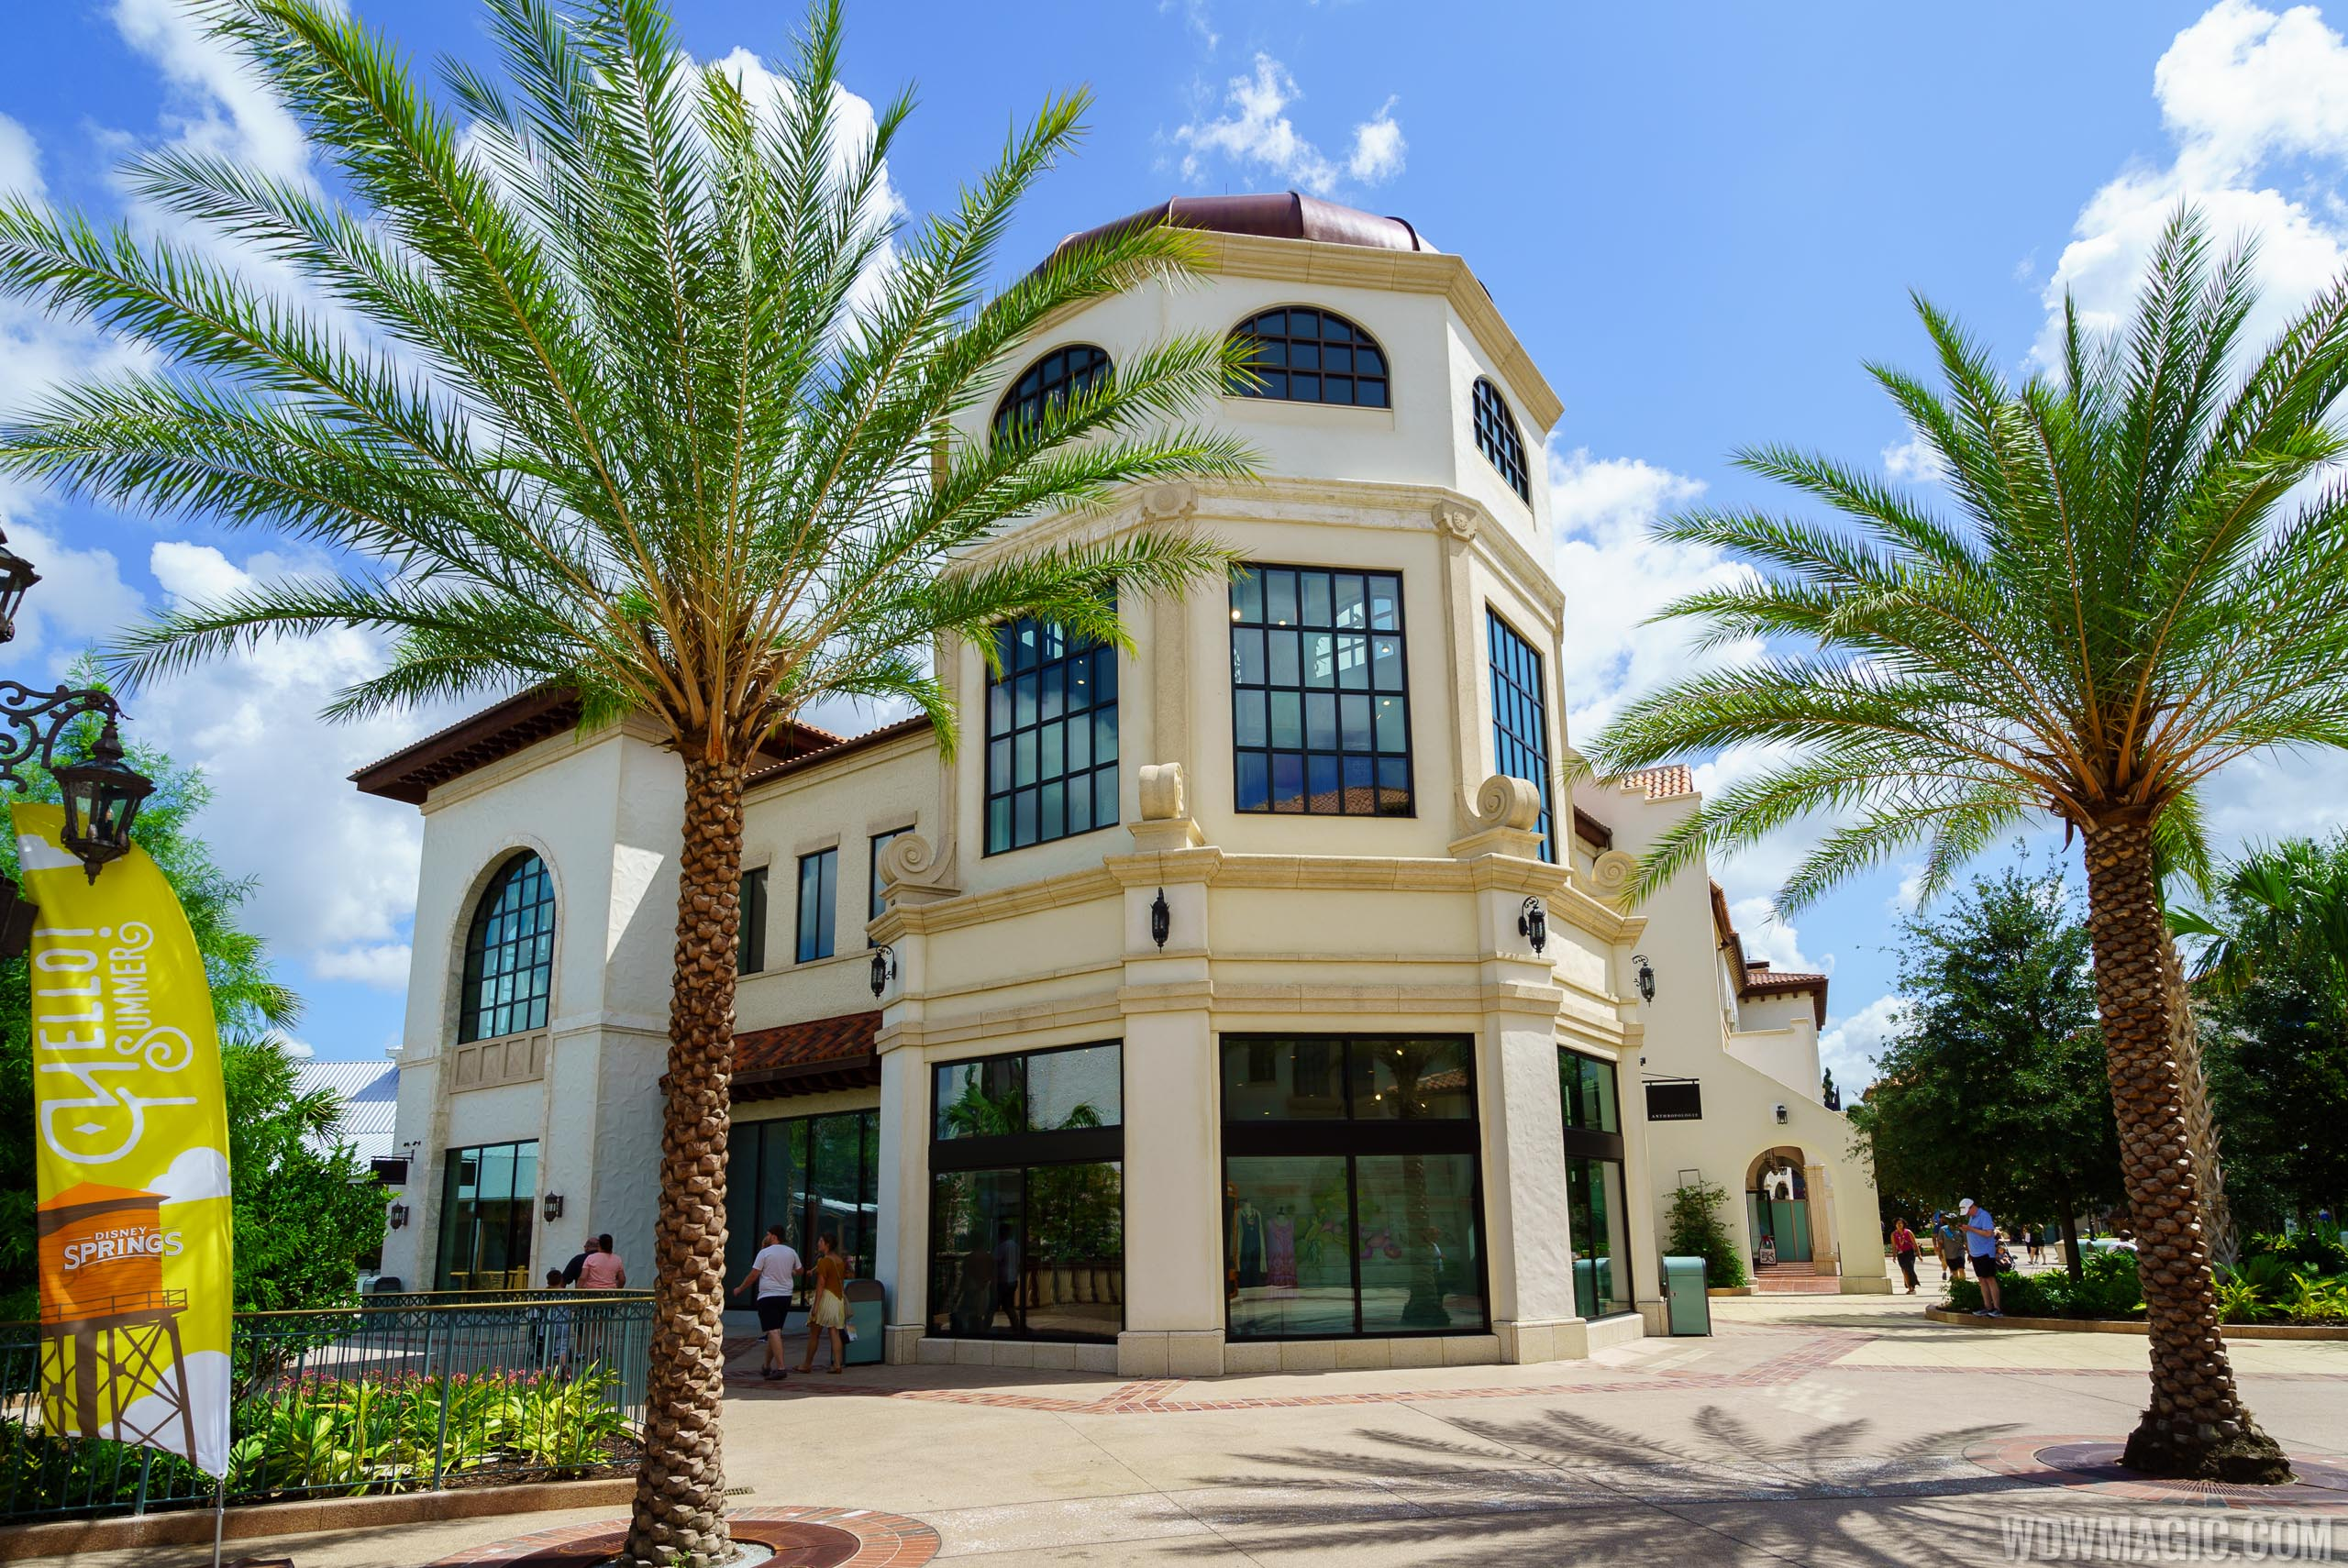 Anthropologie at Disney Springs Town Center